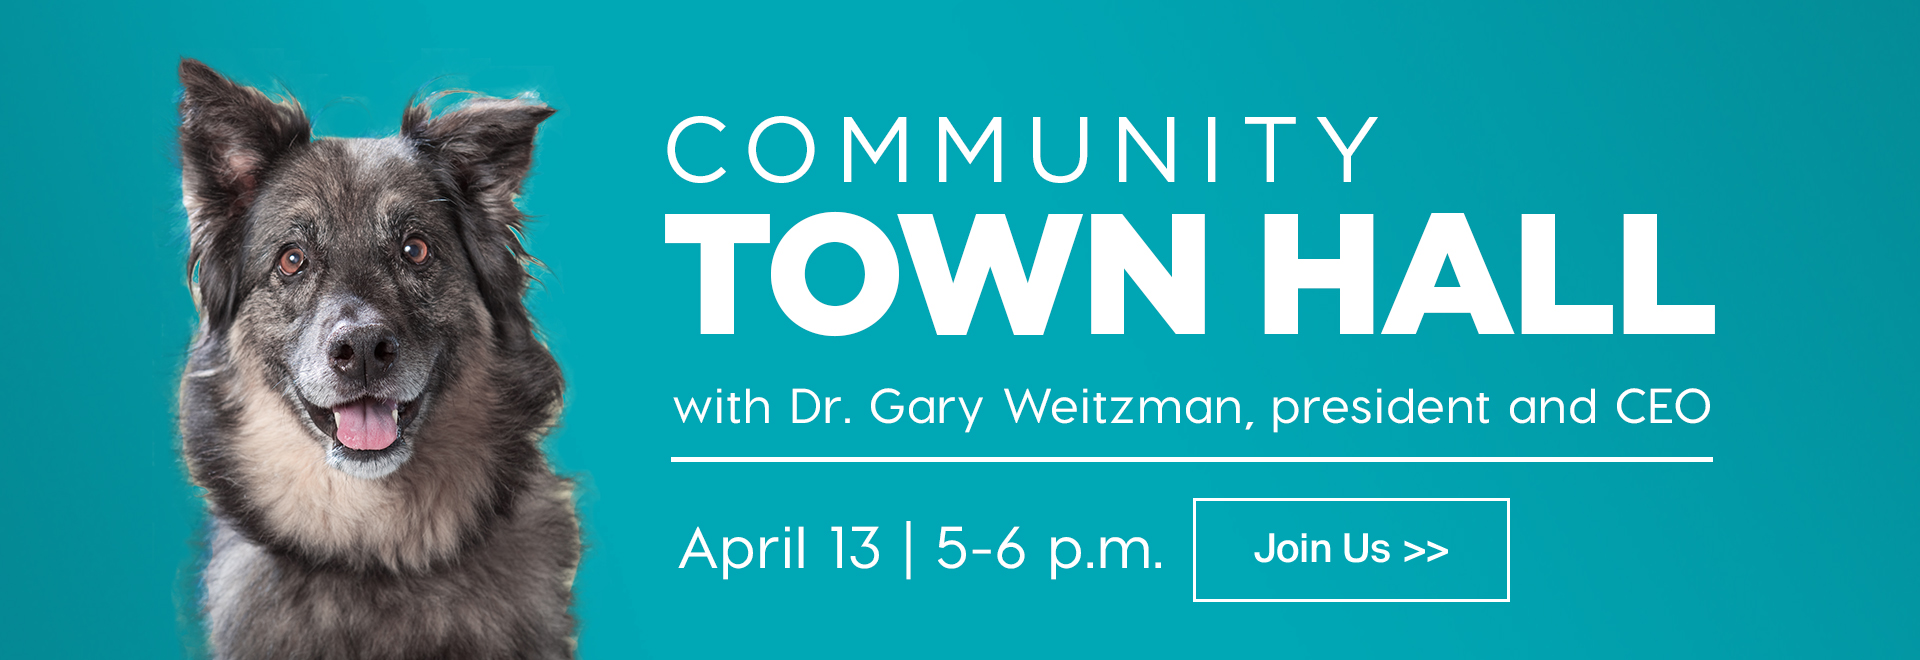 Community Town Hall